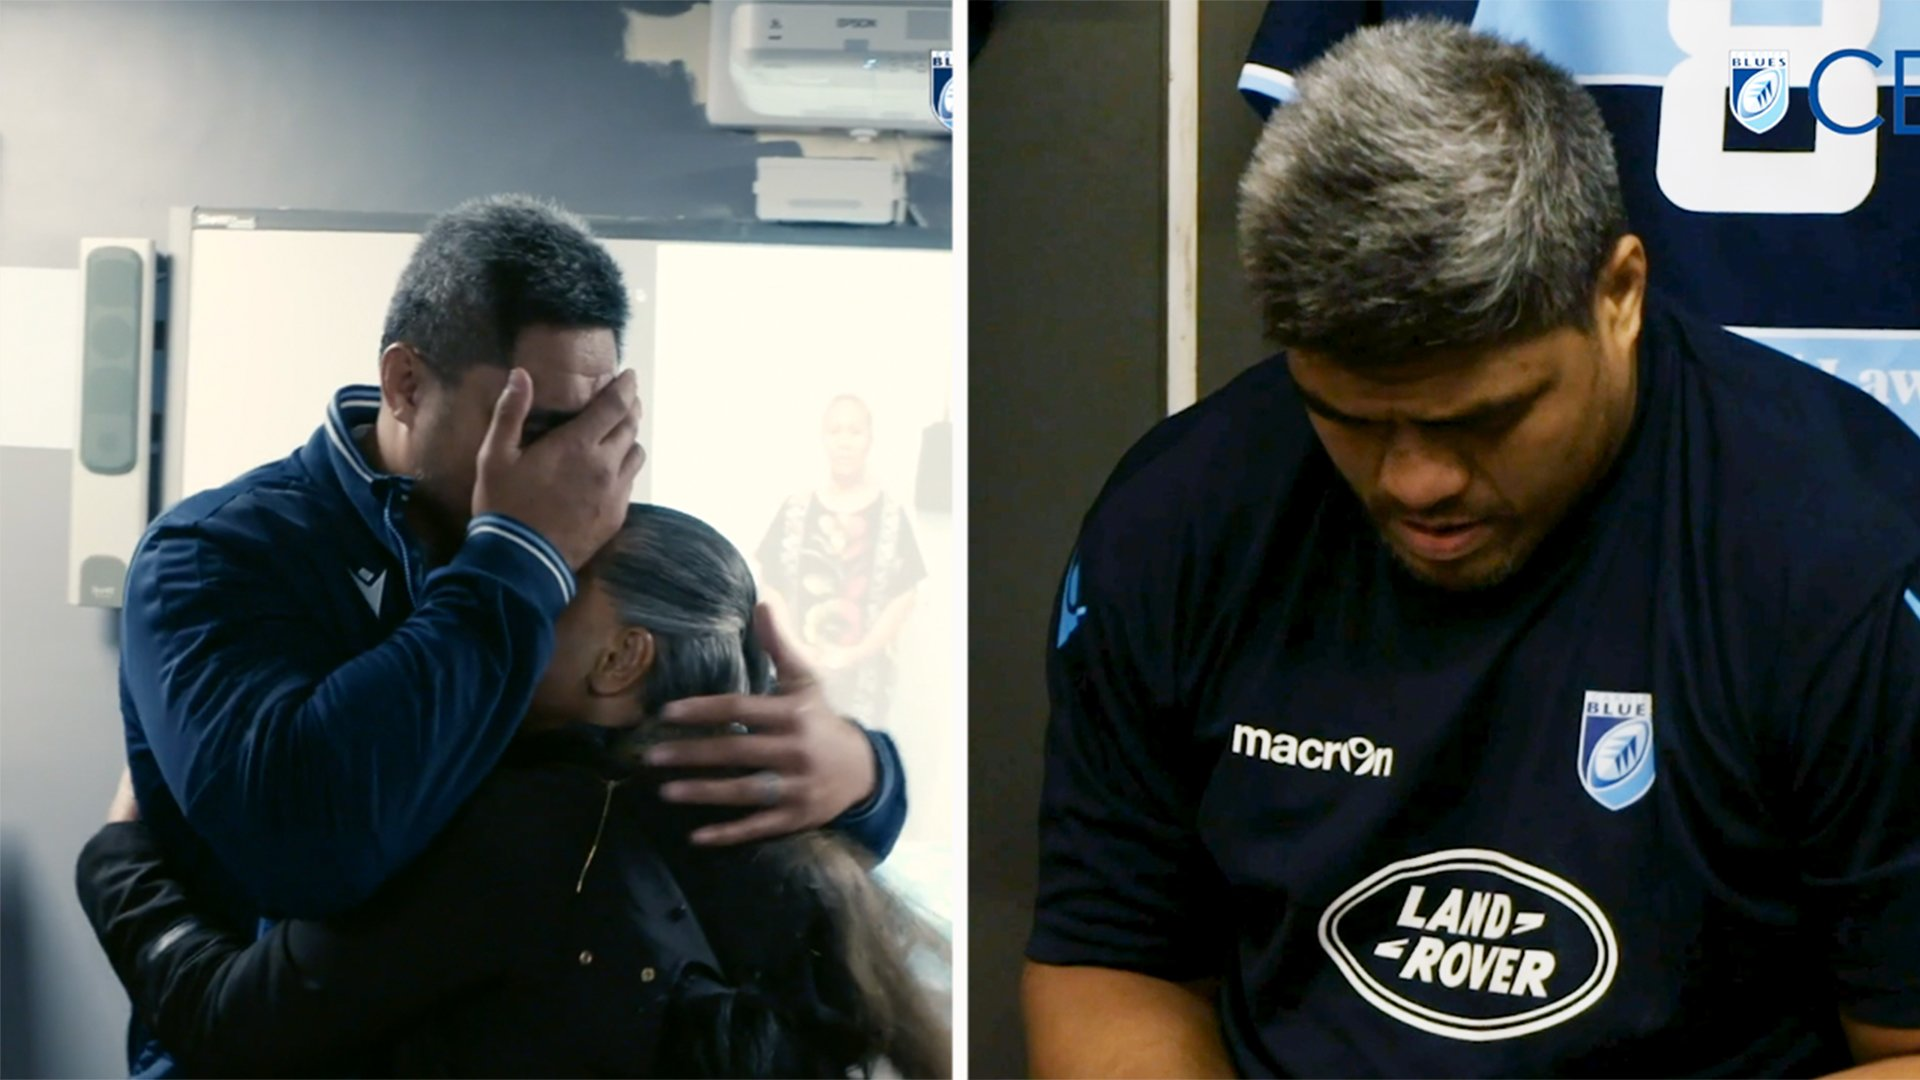 Cardiff Blues have officially won Christmas with this simple gesture to one of their players